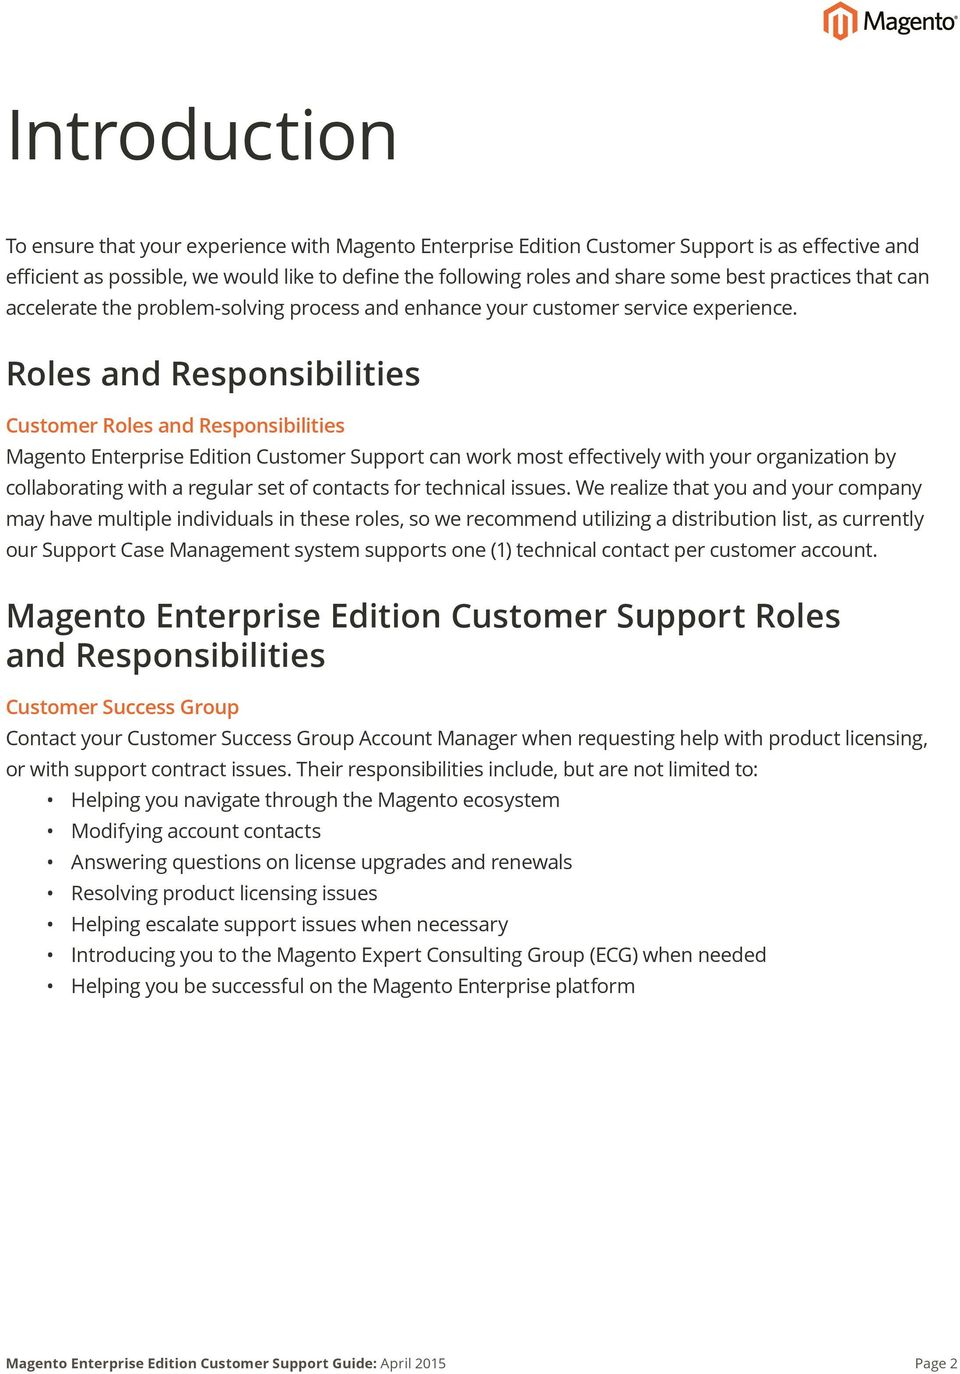 Roles and Responsibilities Customer Roles and Responsibilities Magento Enterprise Edition Customer Support can work most effectively with your organization by collaborating with a regular set of